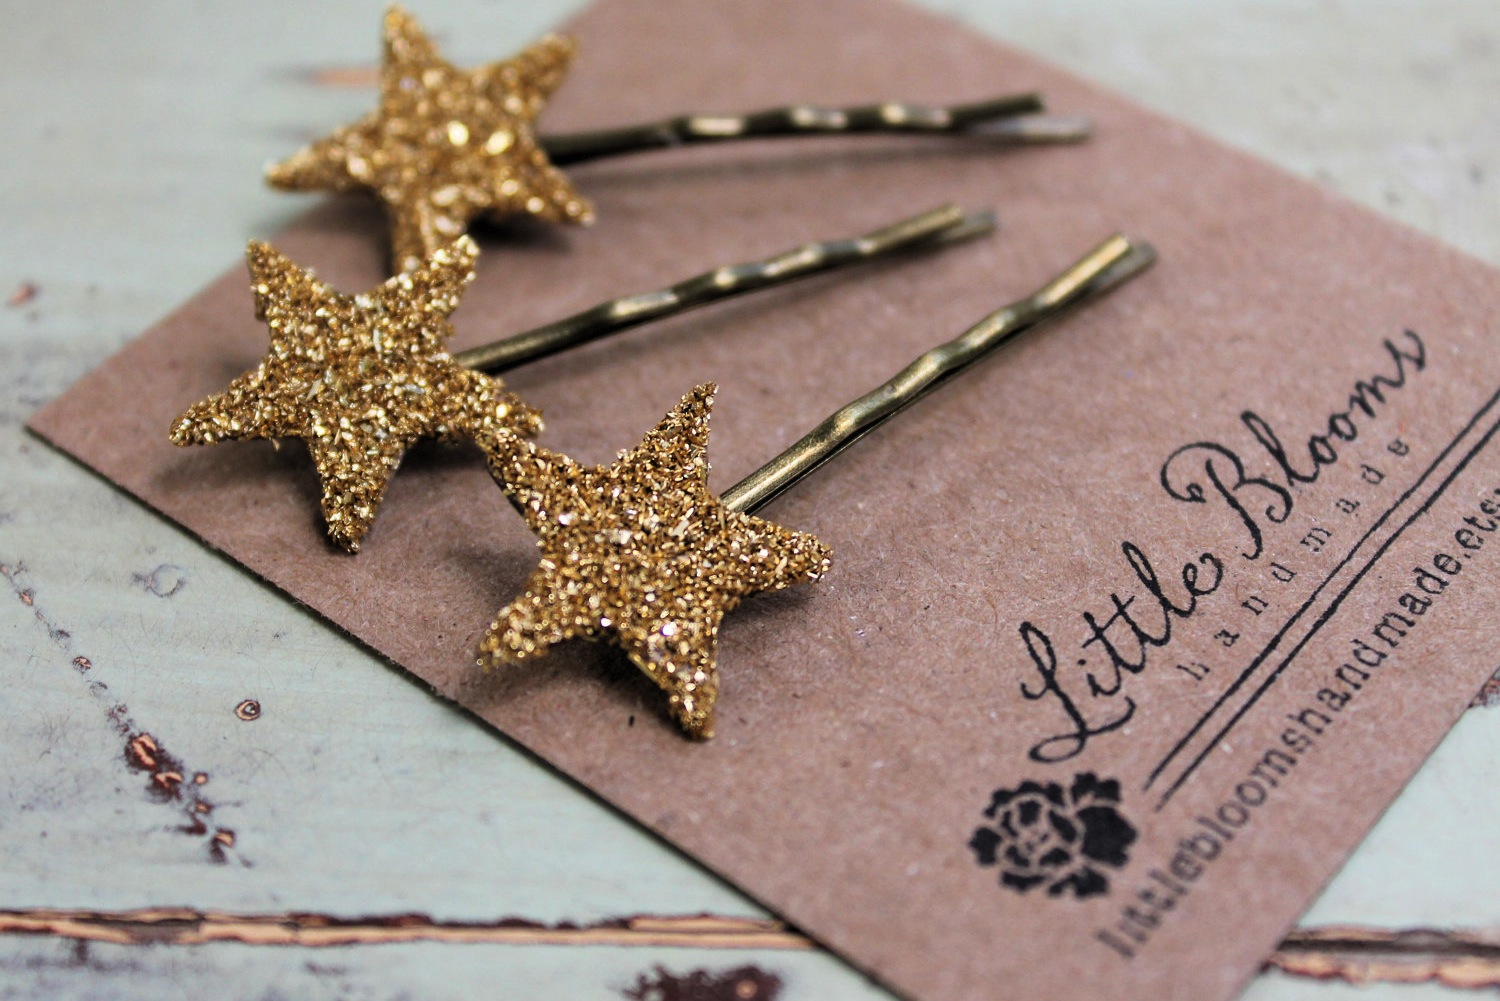 Glittery-gold-wedding-finds-for-glam-handmade-weddings-hair-pins.original